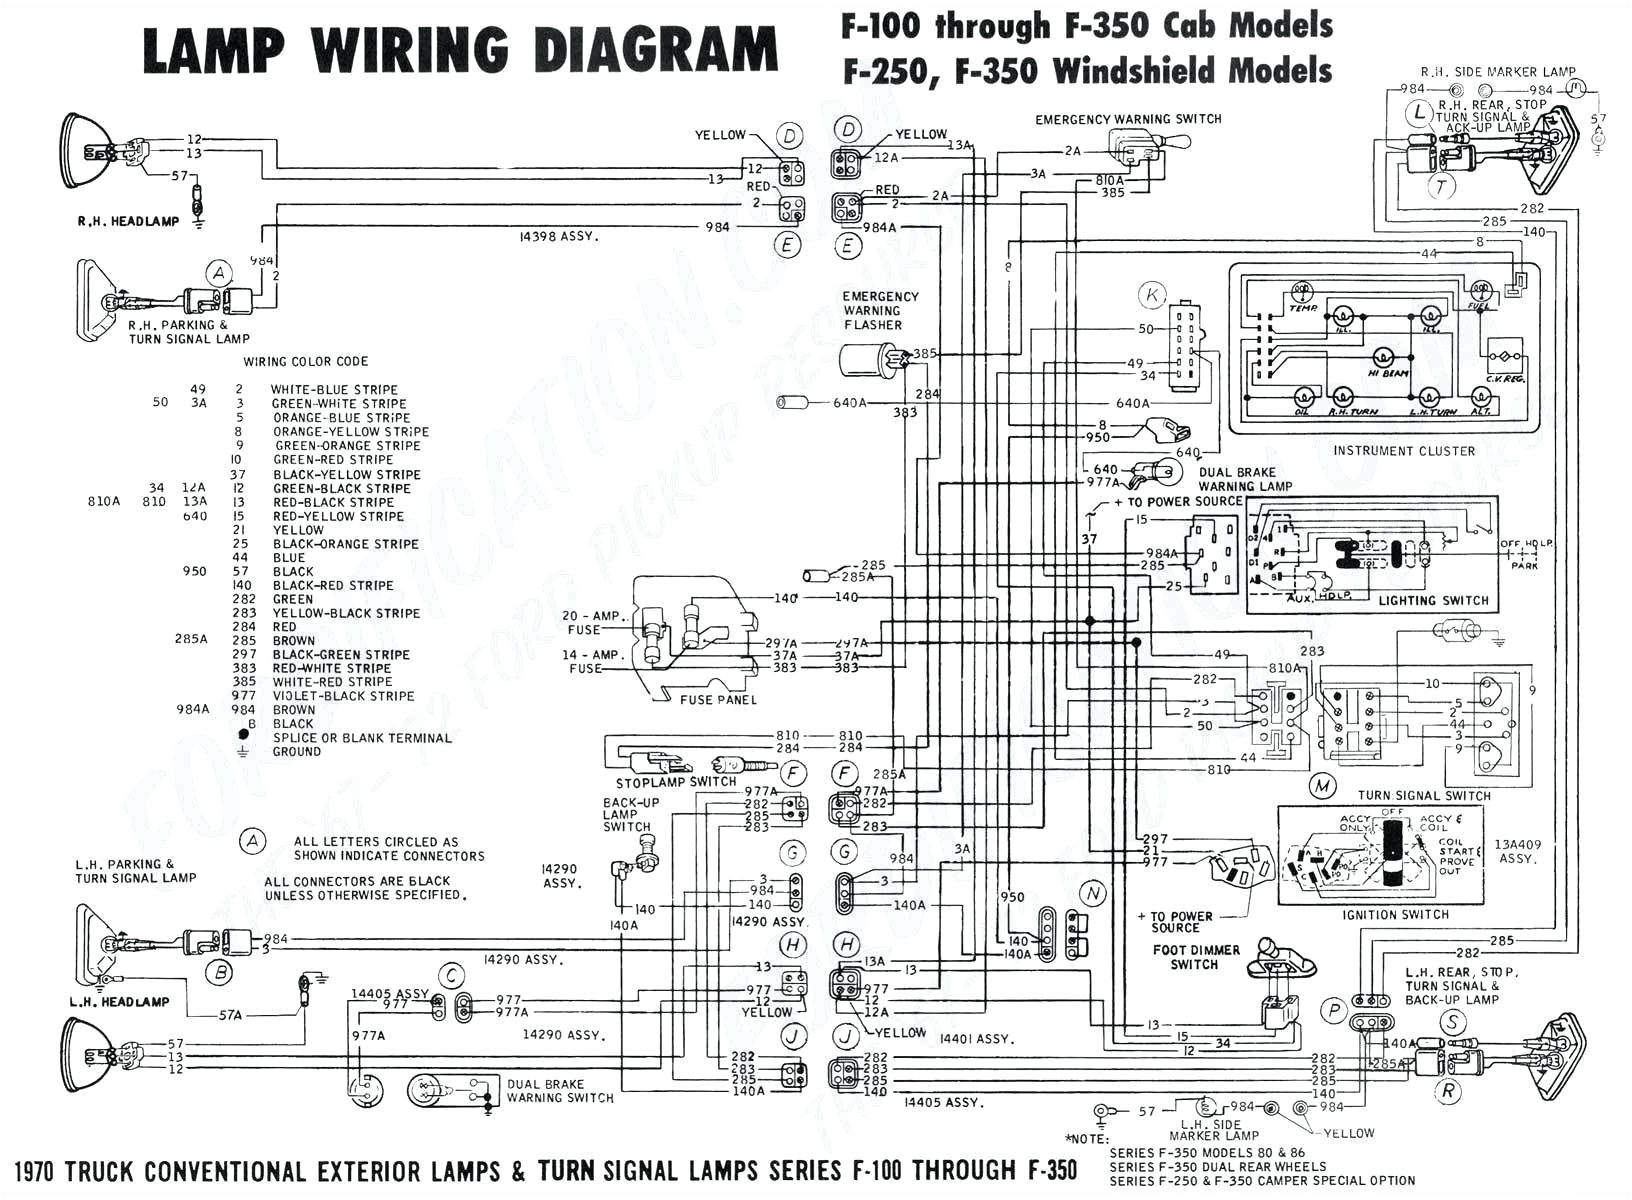 flasher fuse diagram 2006 kia sportage advance wiring diagram 2002 ford windstar ignition wiring diagram wiring